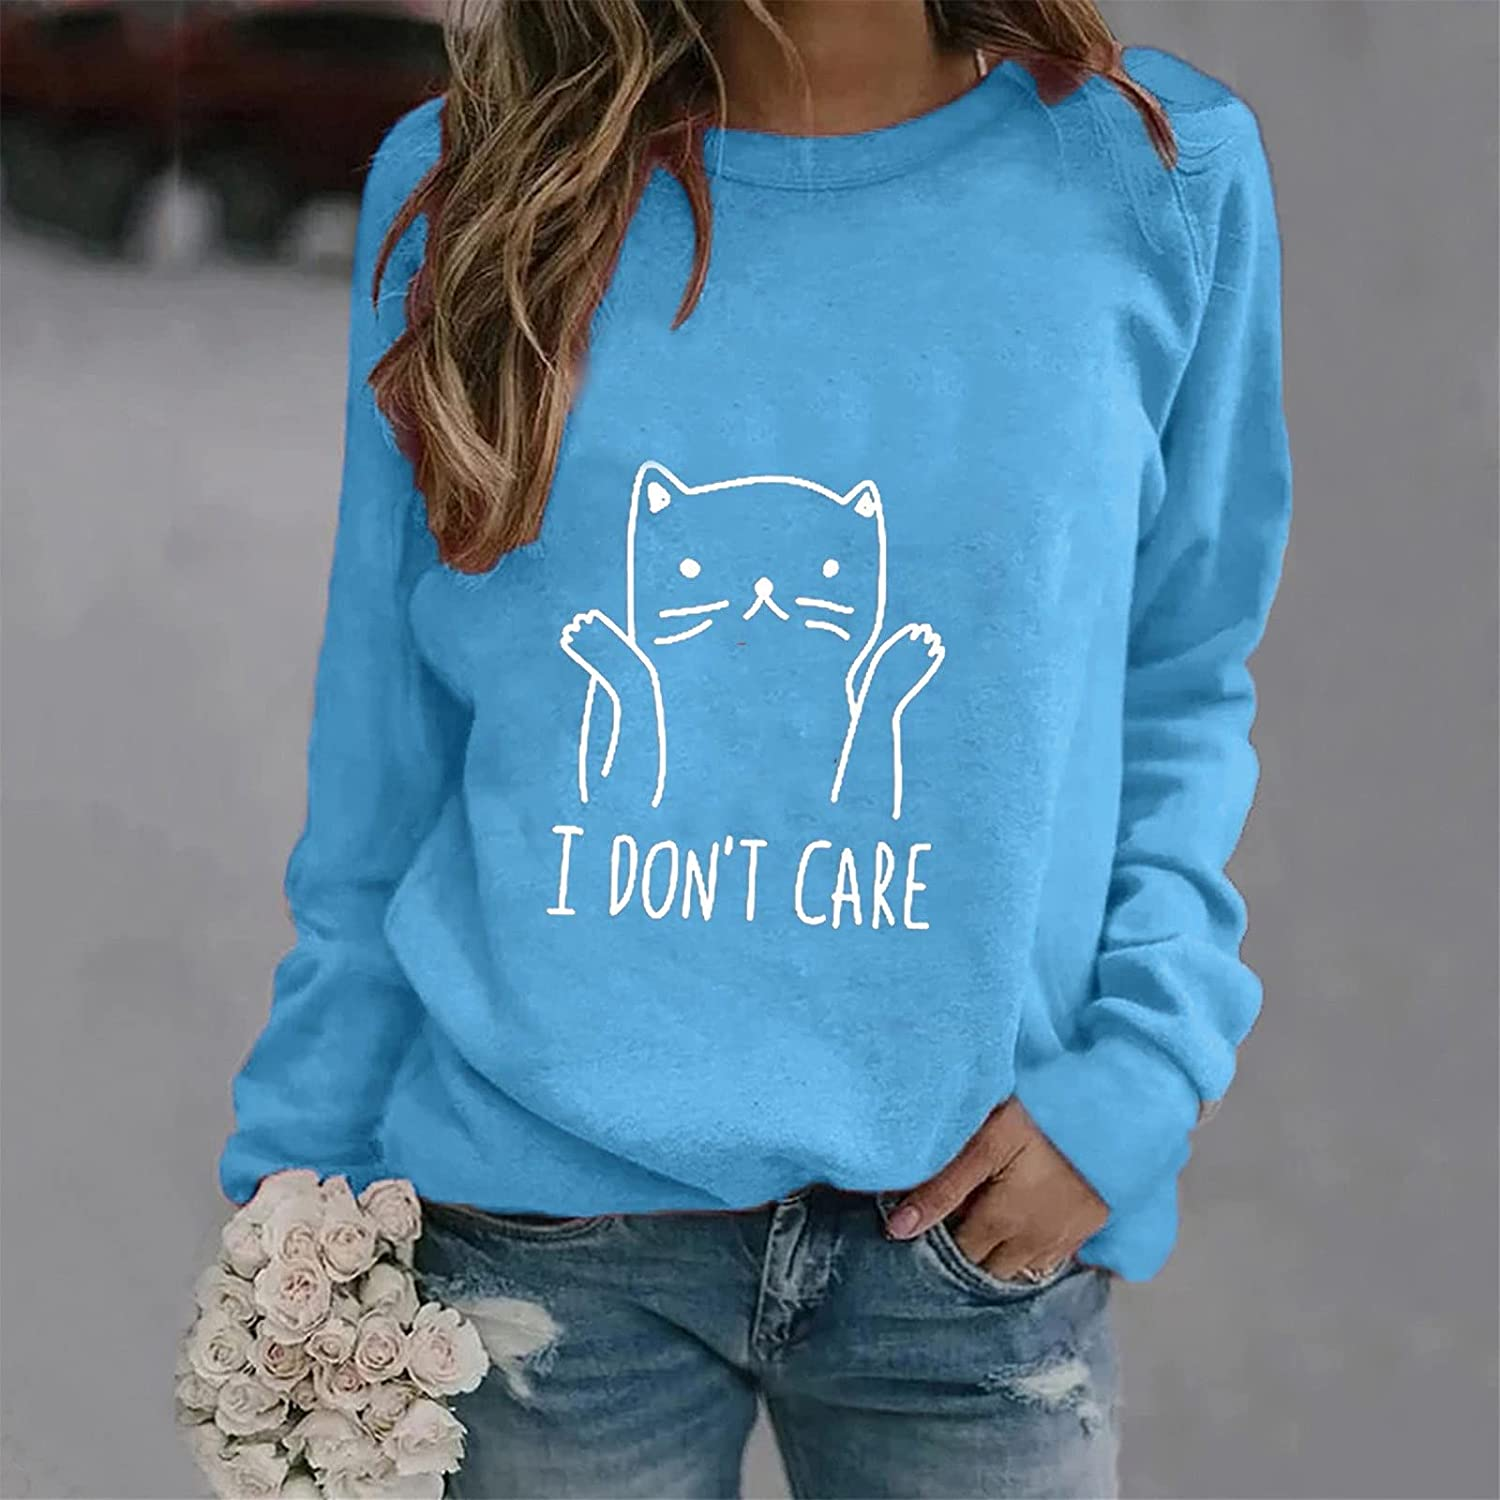 Long Sleeve Shirts for Women, Blouse Casual Long Sleeve Cute Loose Pullover Womens Crewneck Shirts Graphic Fashion Tops